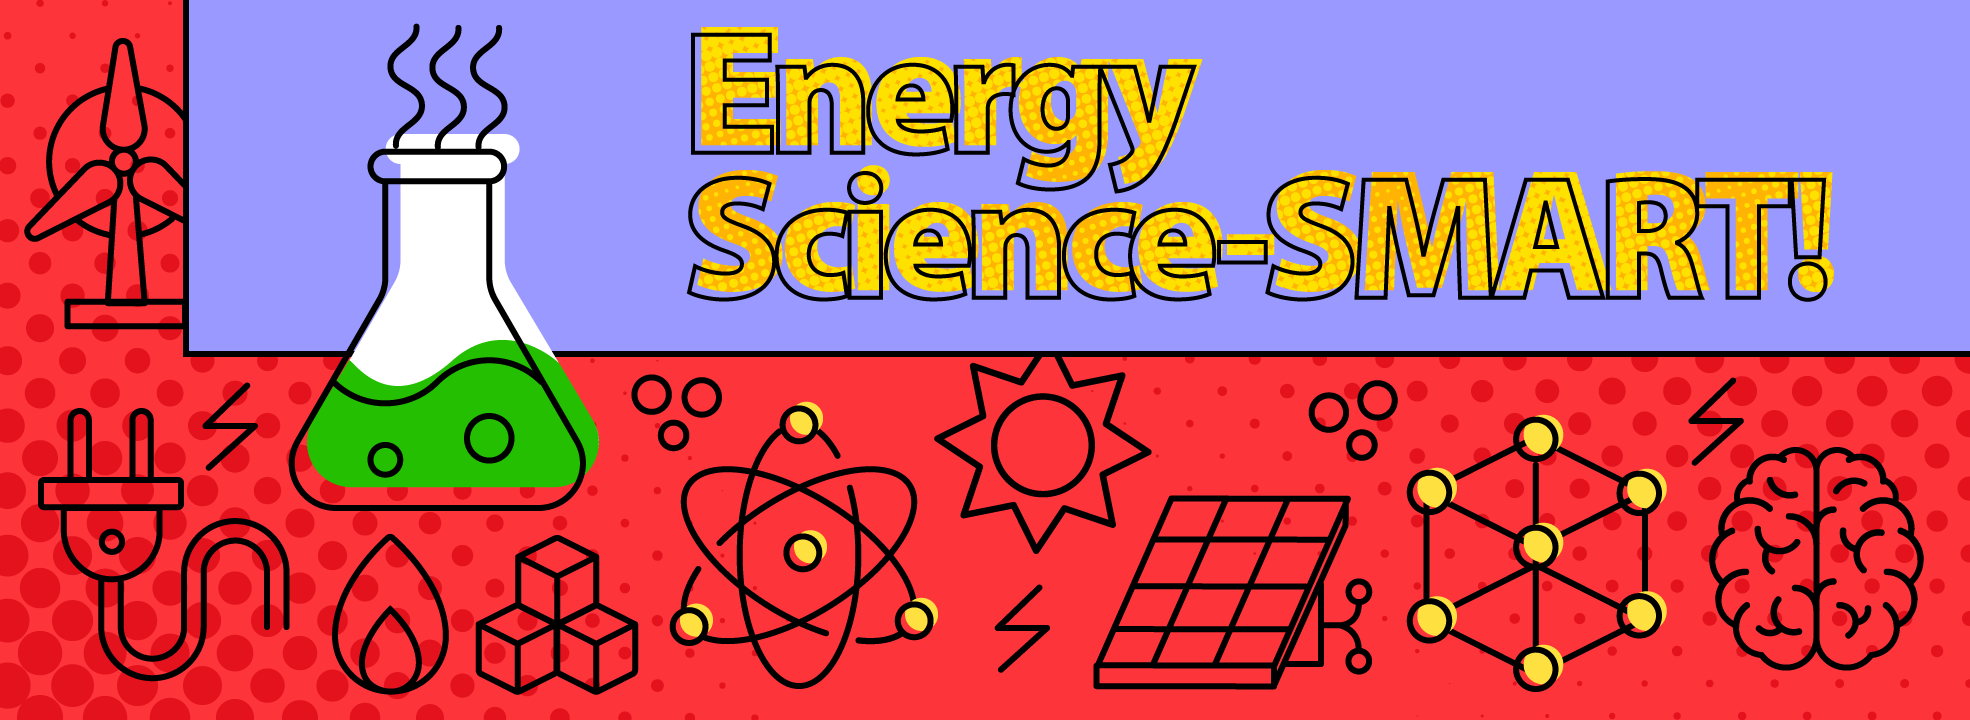 Energy Science-SMART!